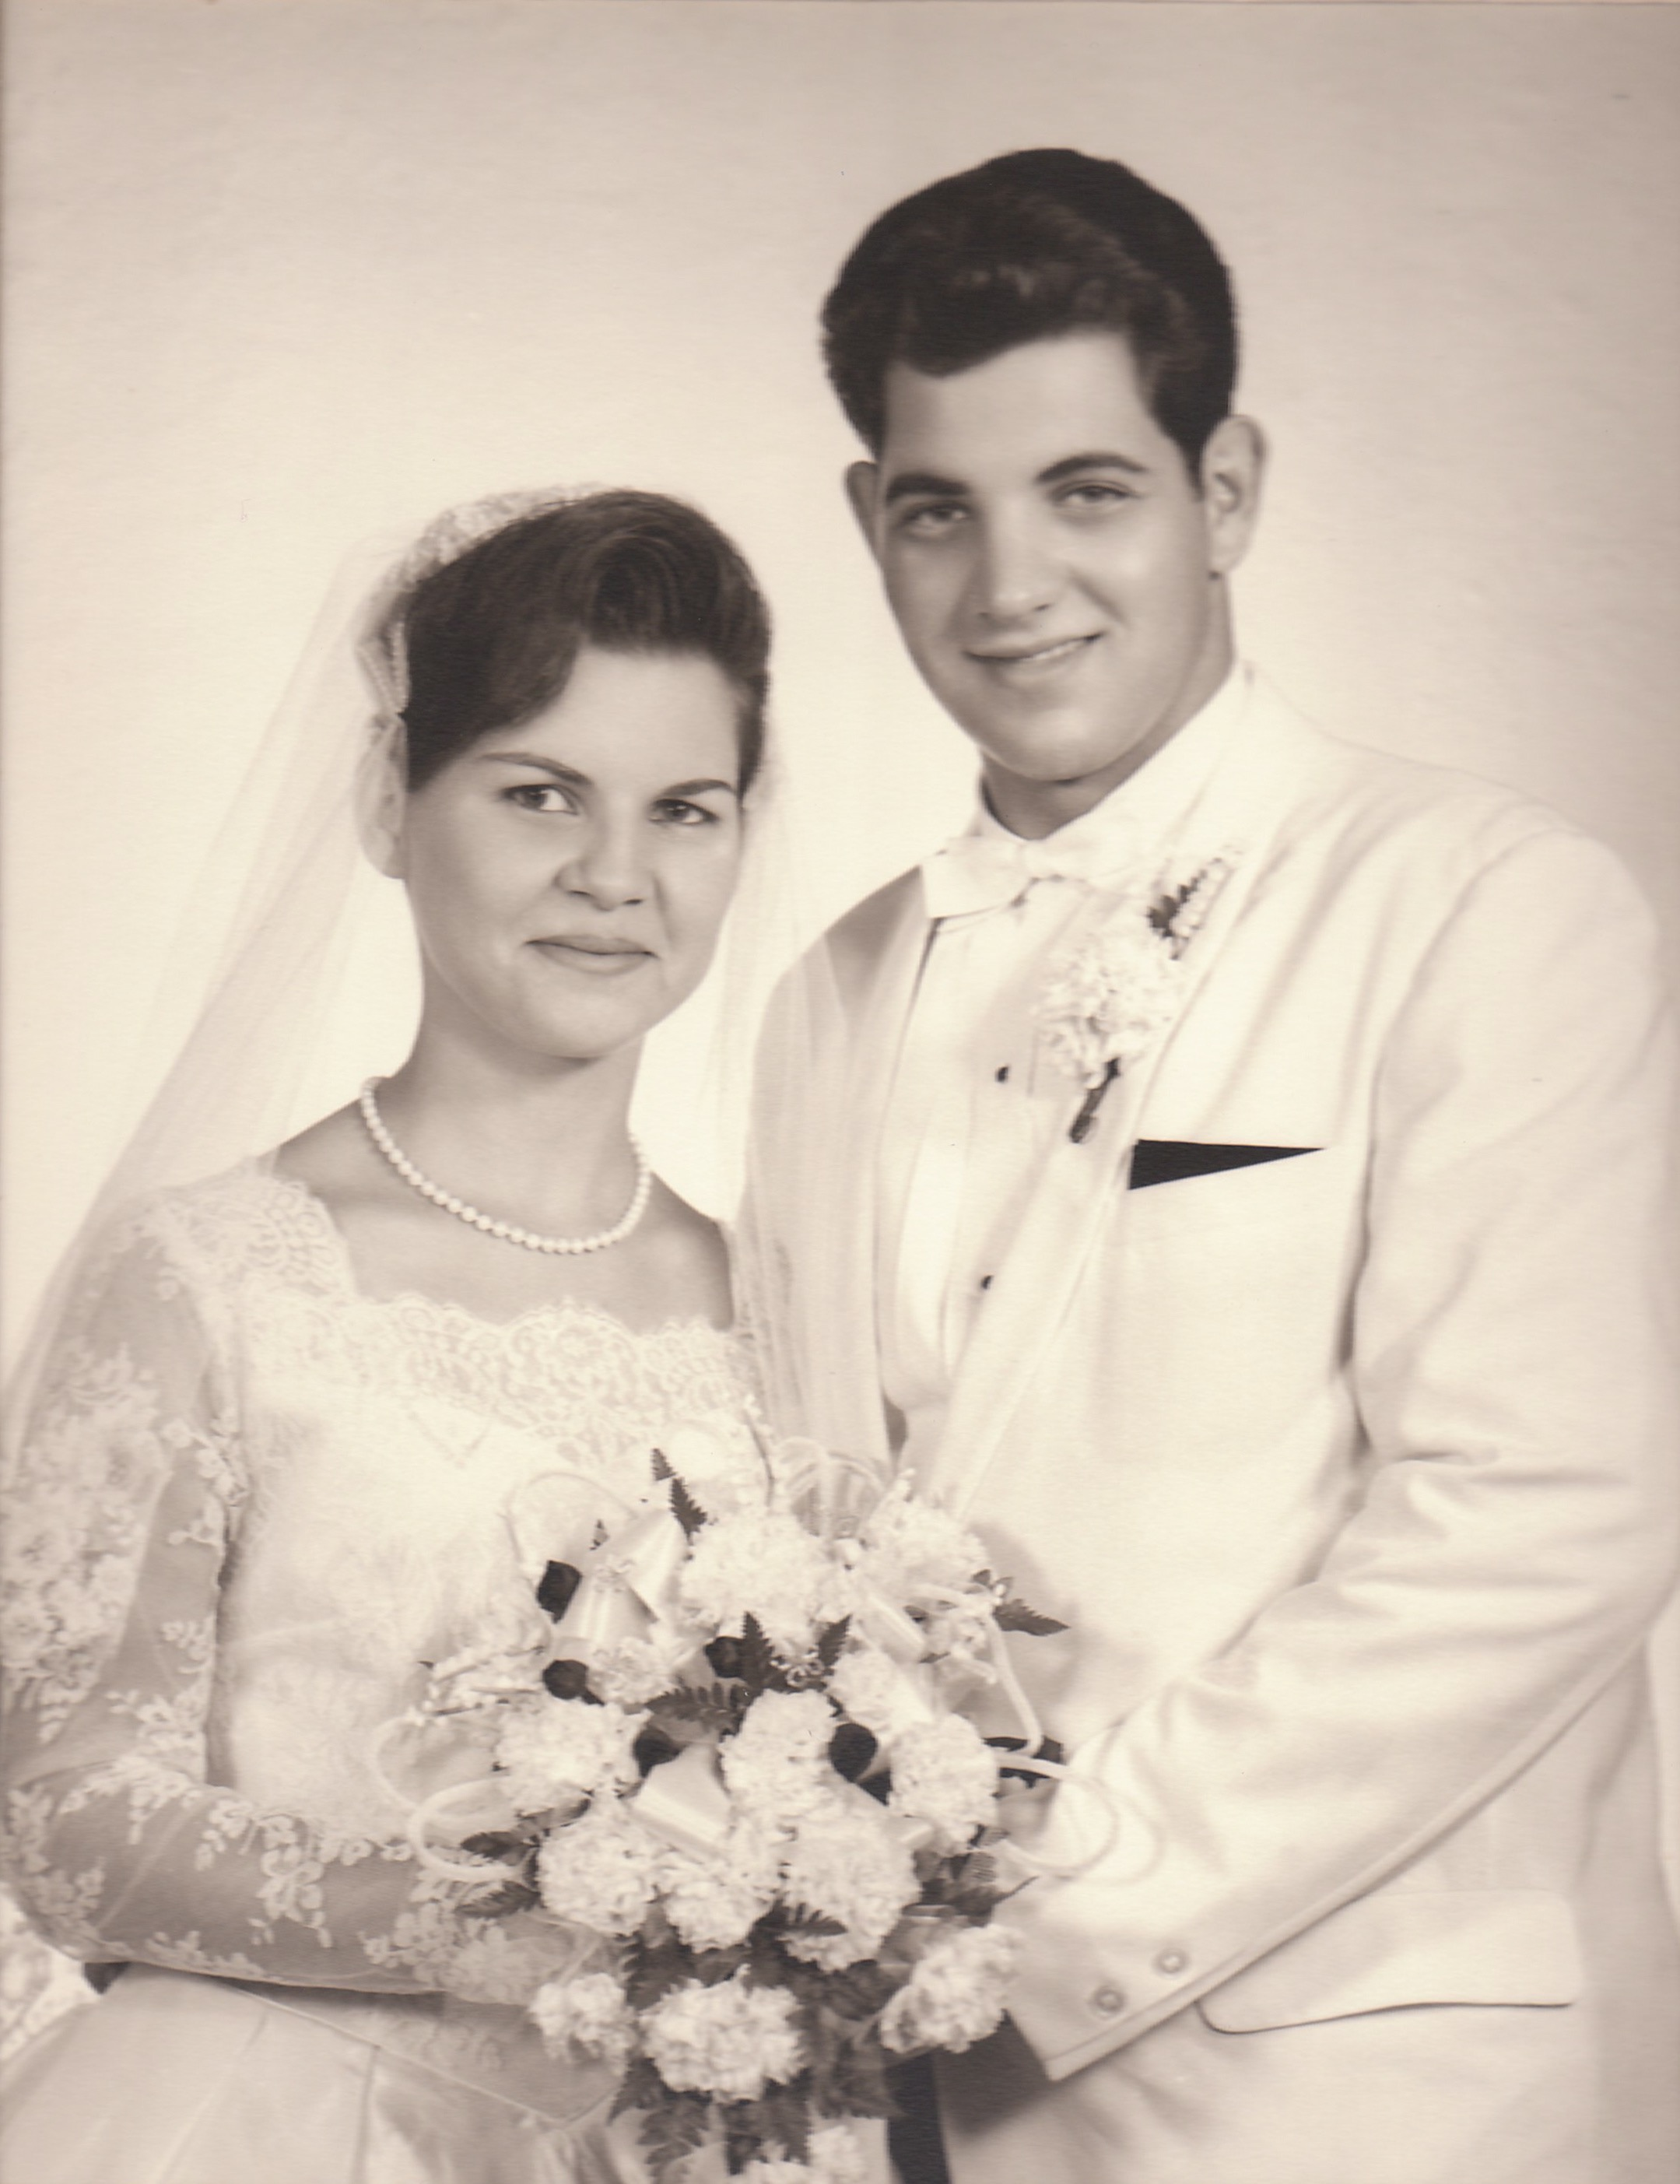 My beautiful mother and handsome father when they were married in 1964.